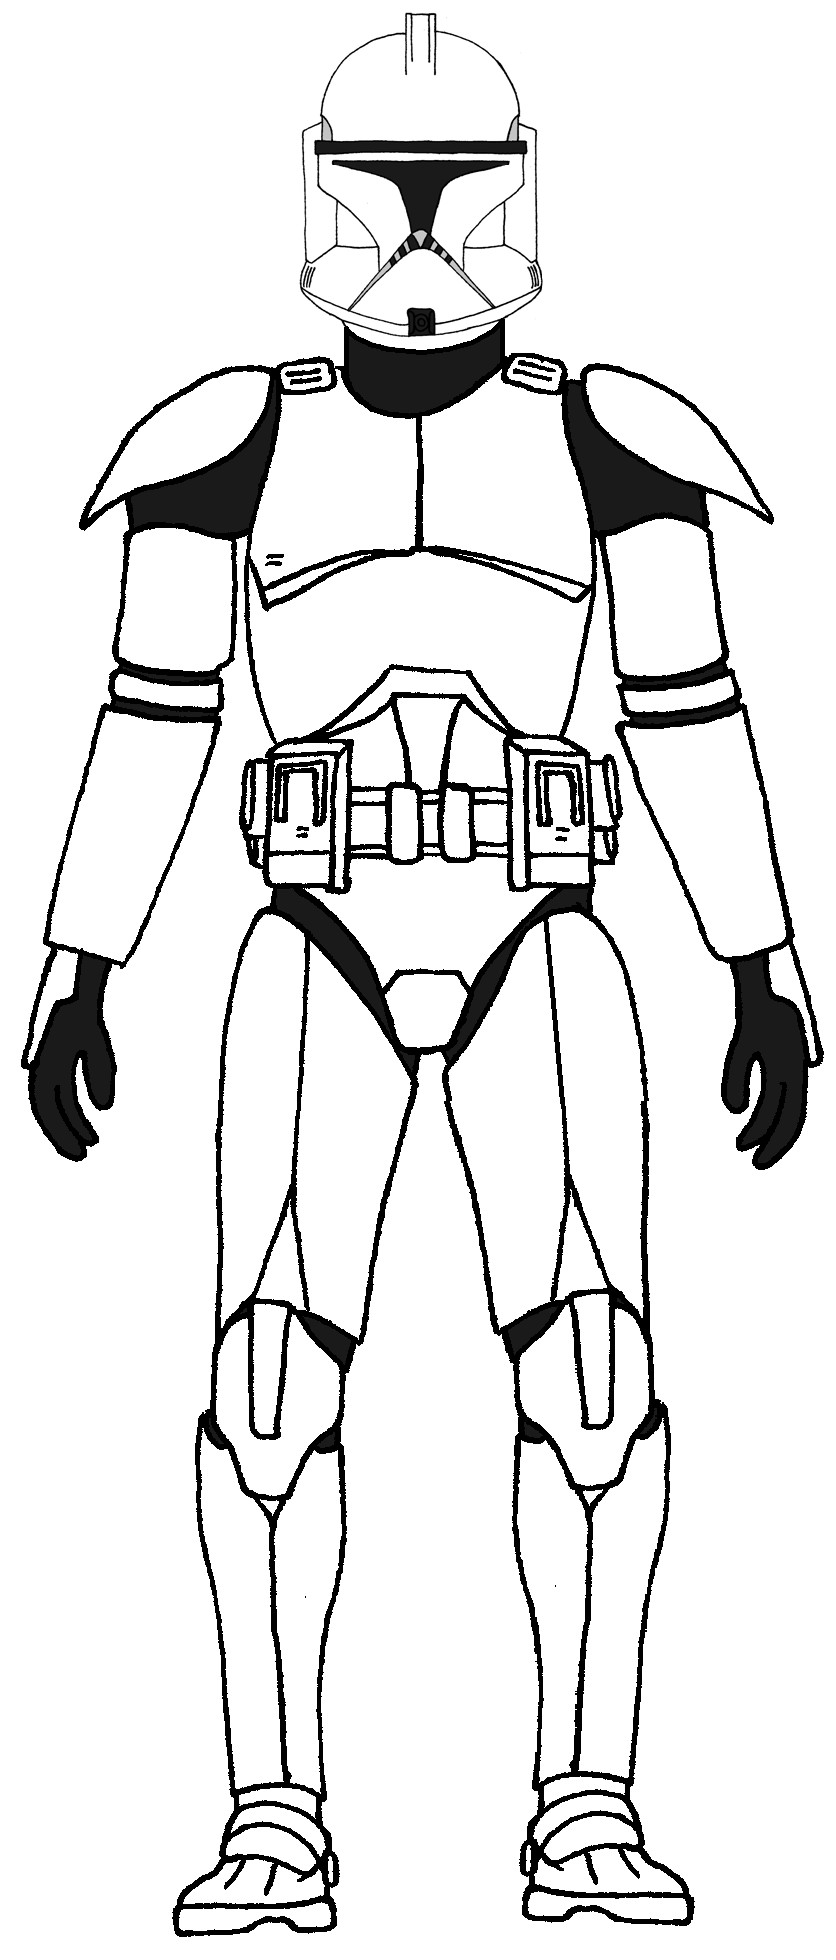 coloring star images star wars battle coloring pages at getcoloringscom free coloring images star